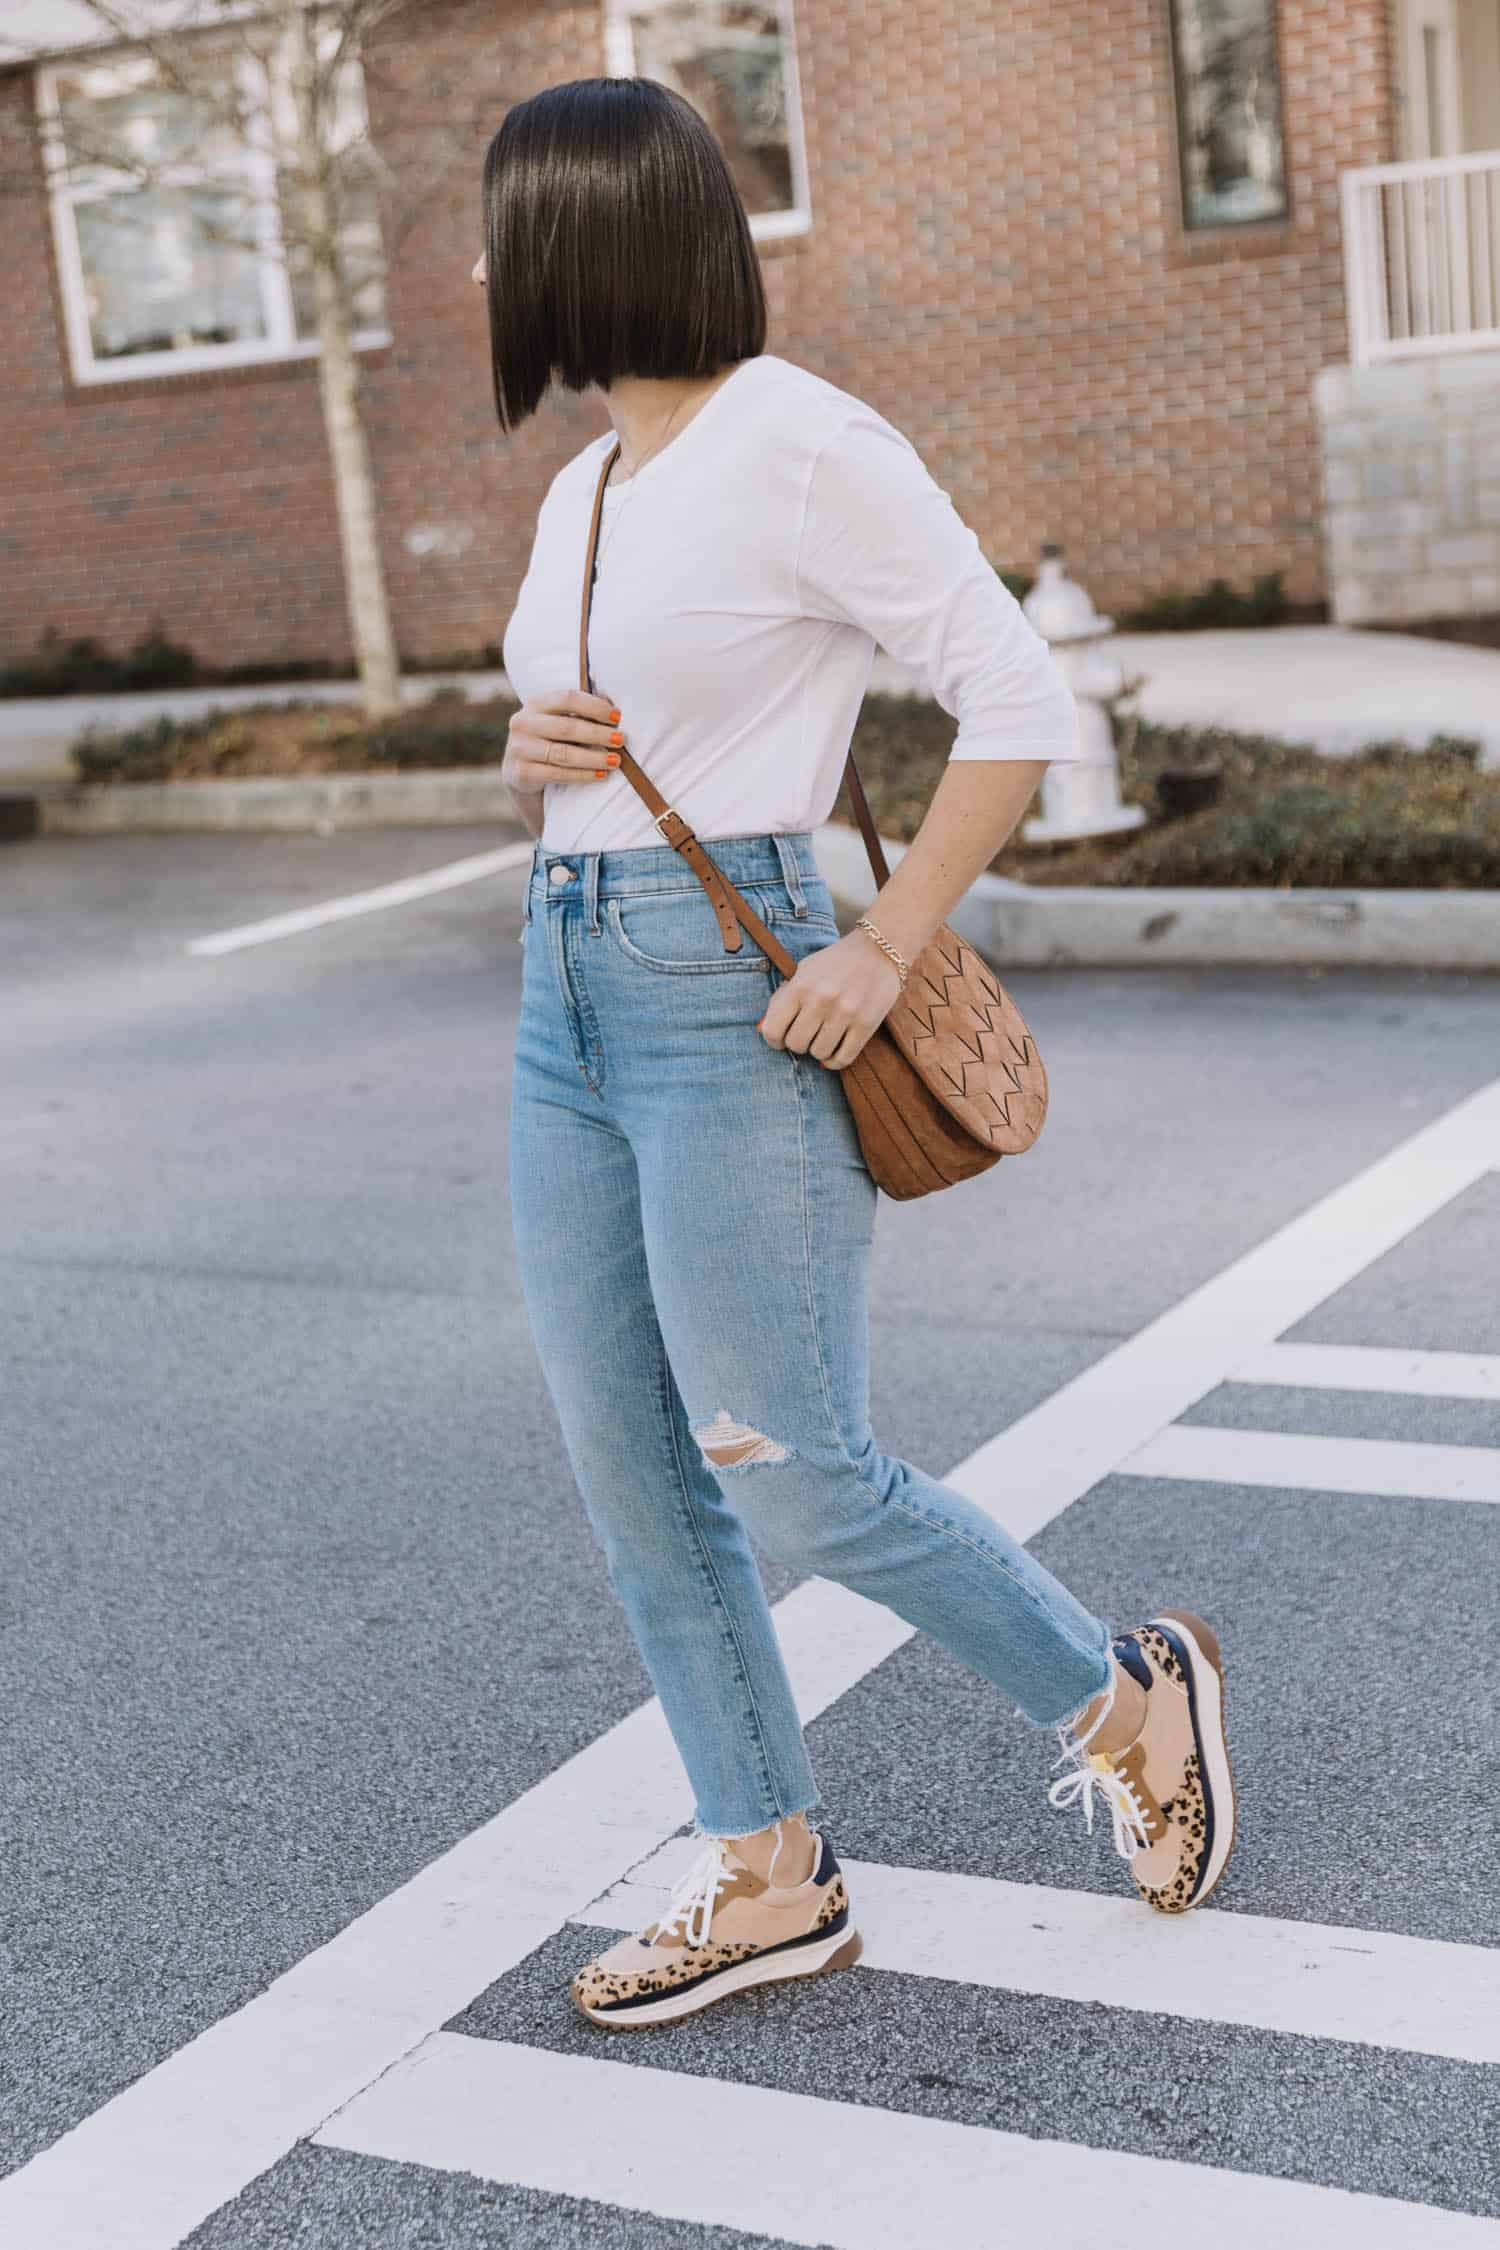 With Jeans And A Tee